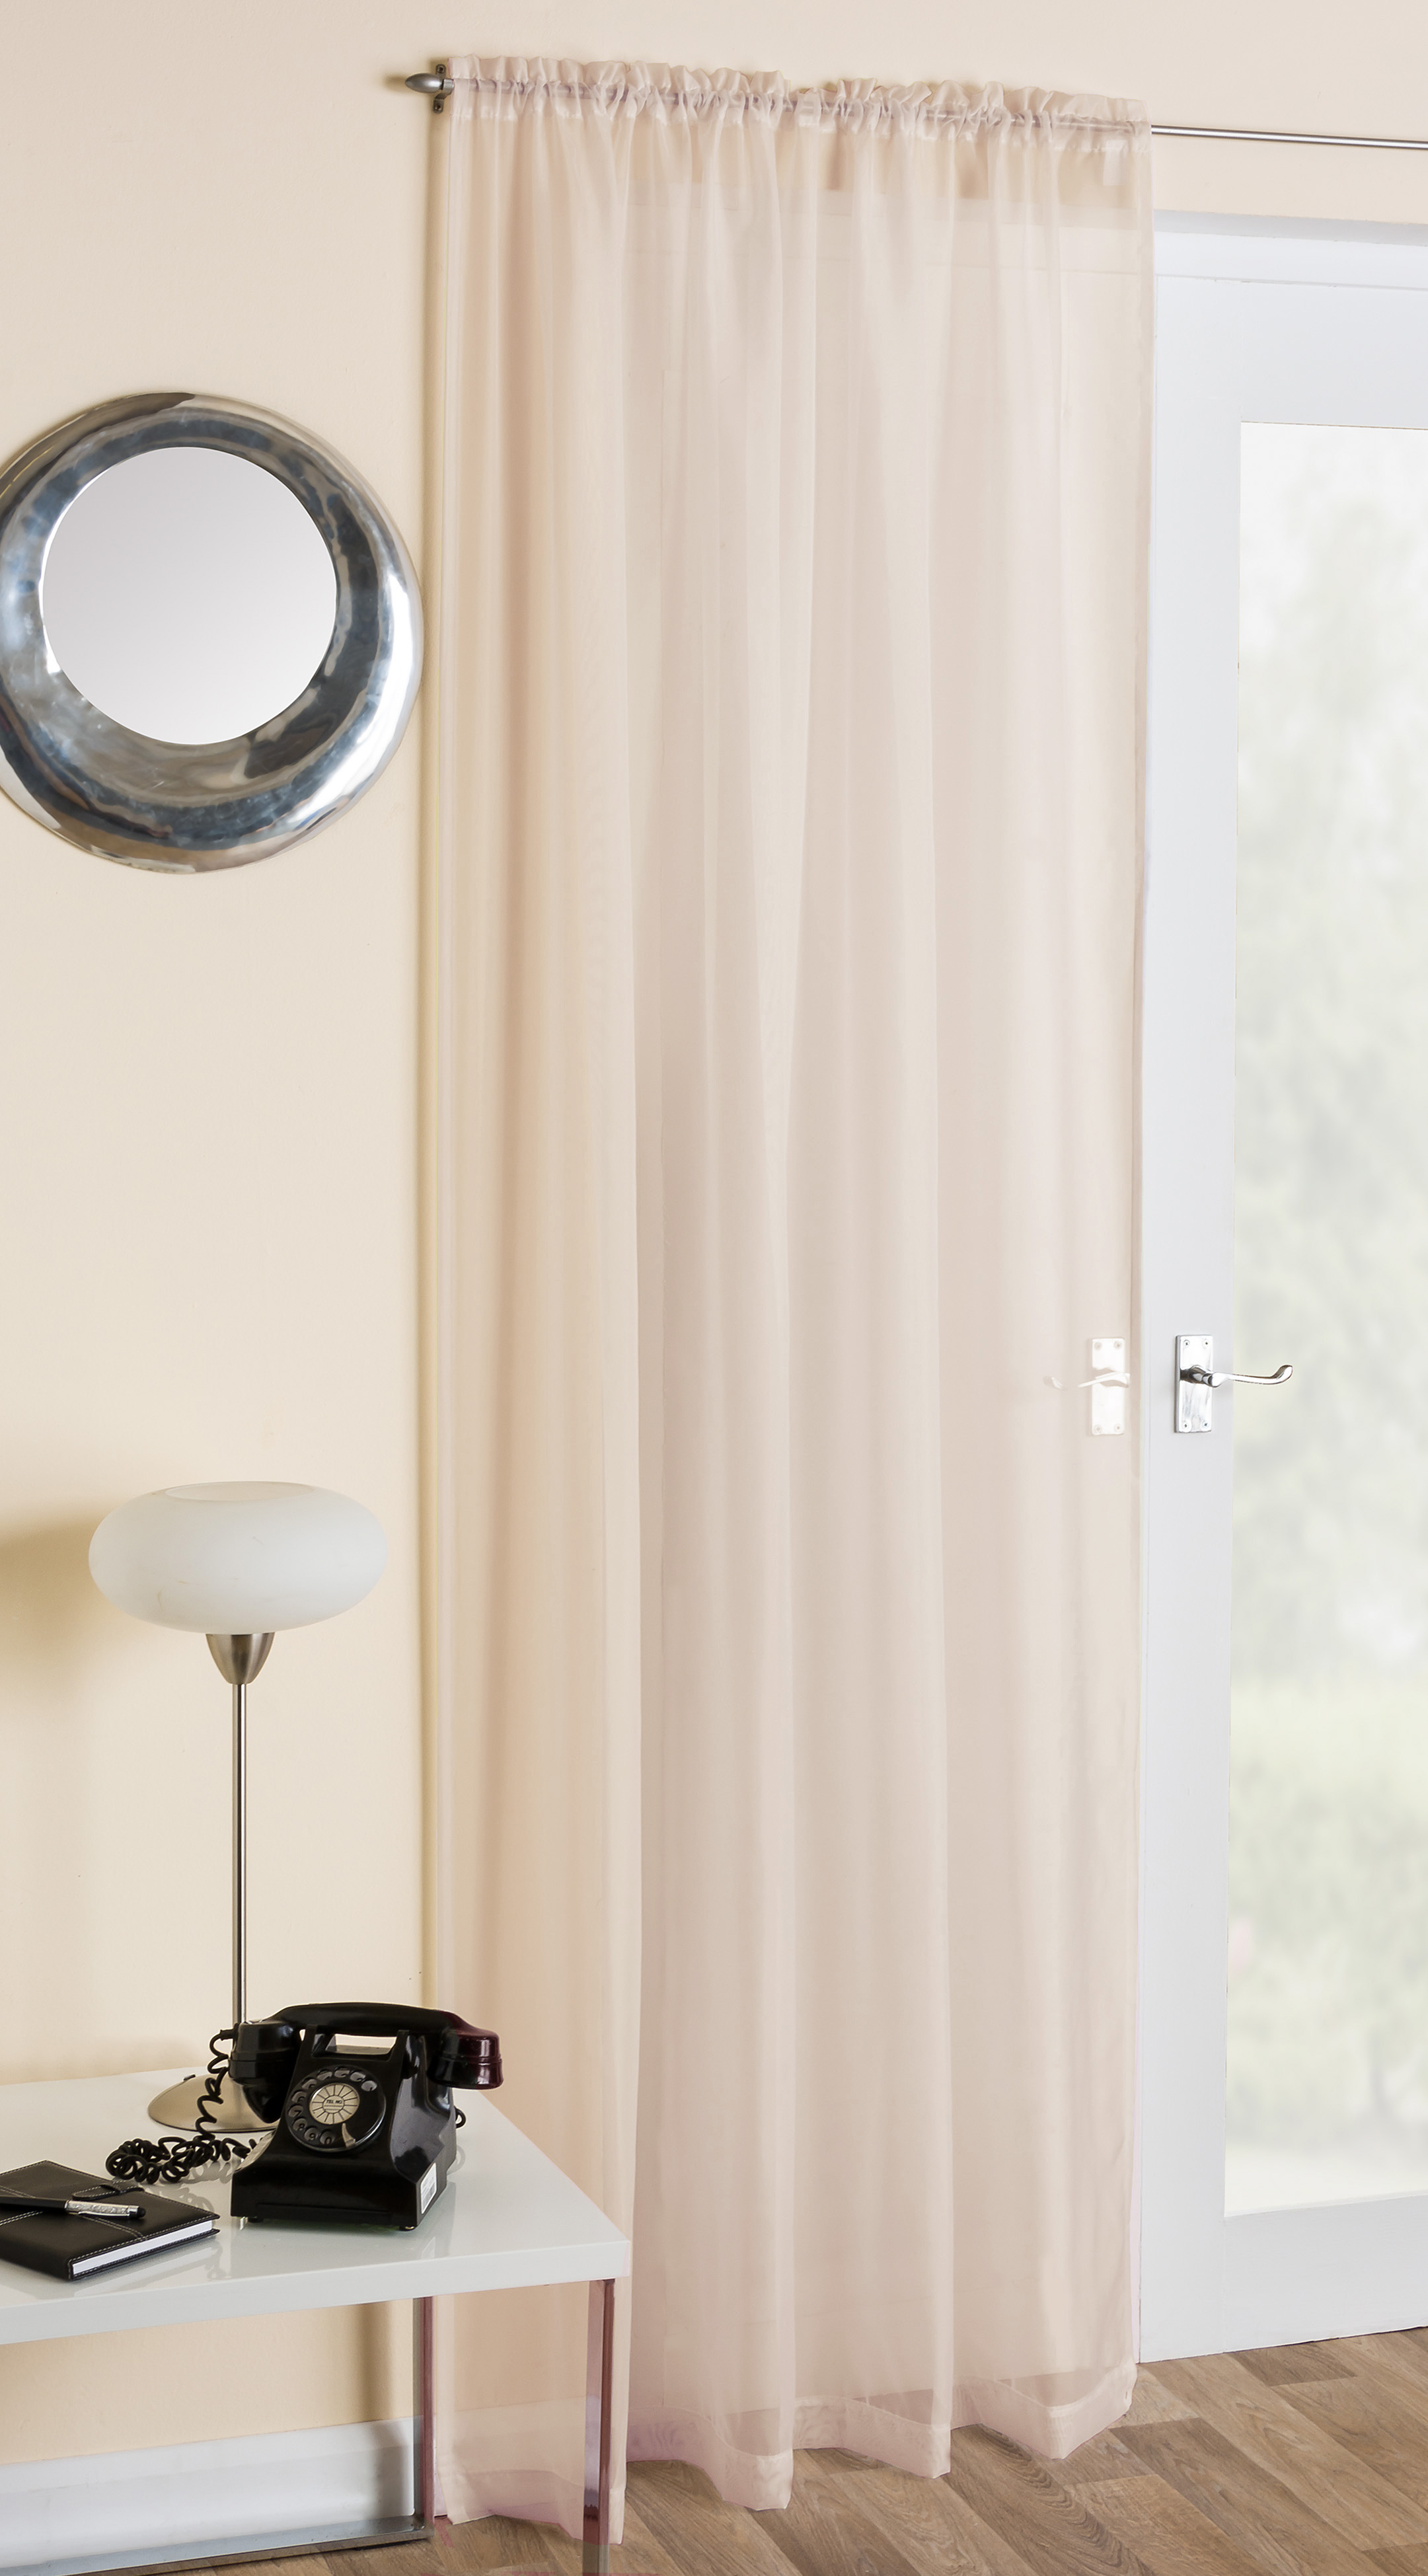 curtain zaslonka curtains panel x voile amazingcurtains products sheer amazing